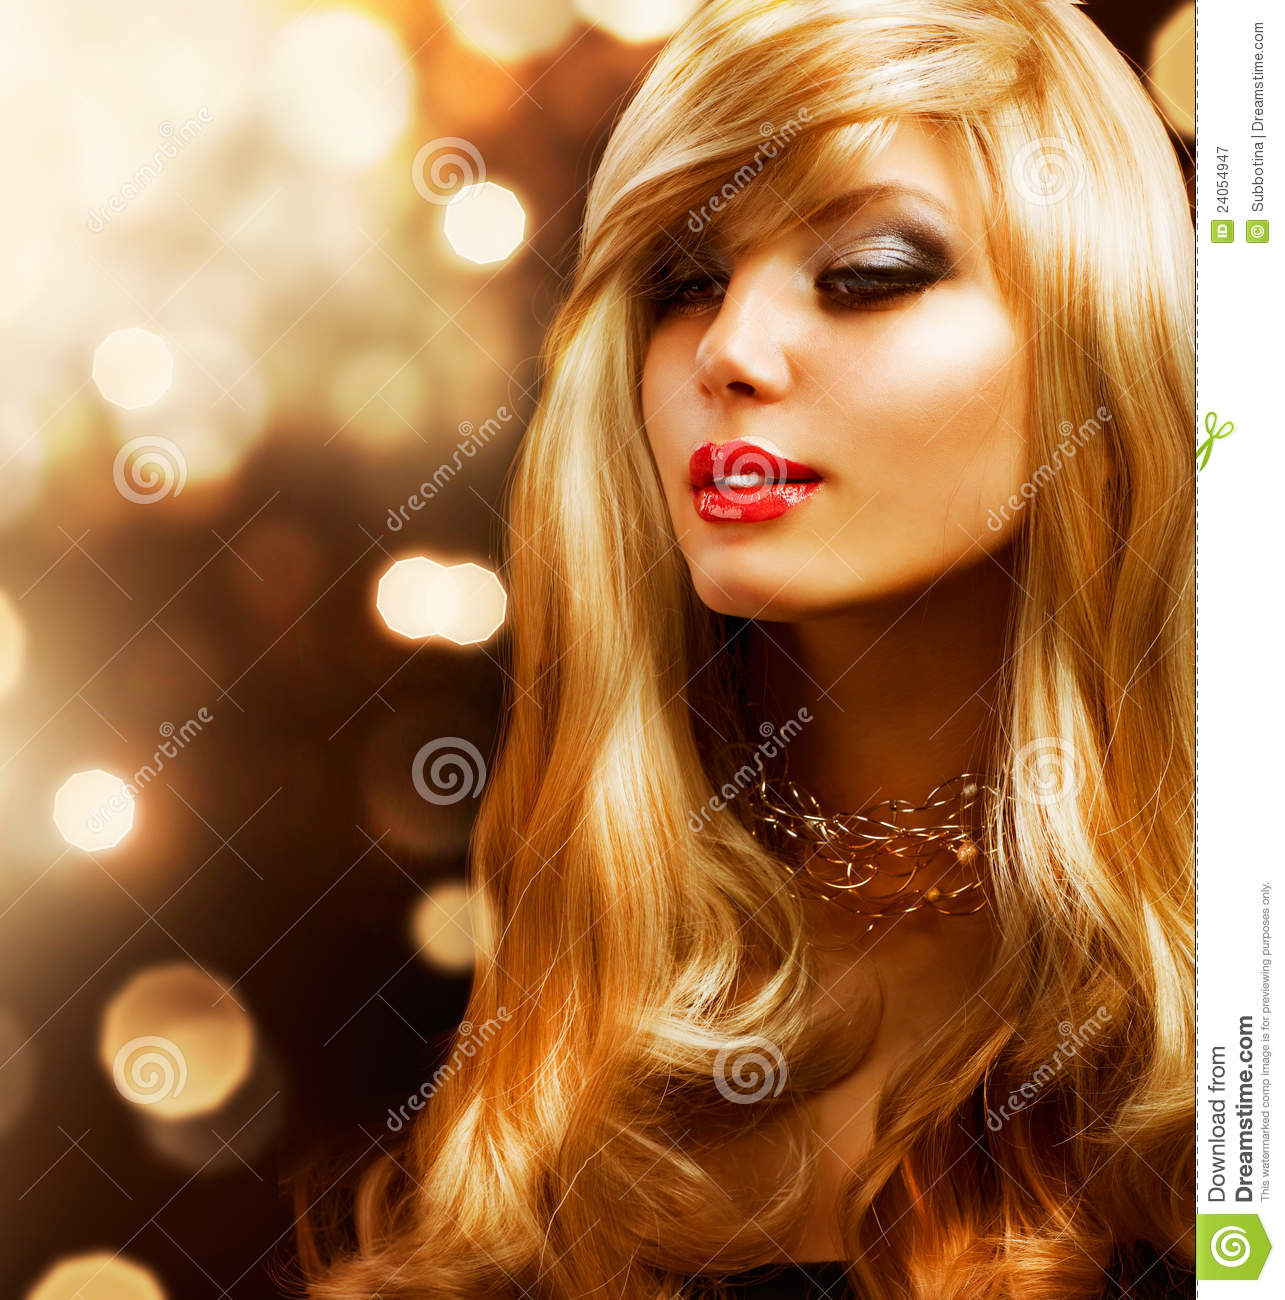 Woman With Long Blonde Hair Stock Photos - Image: 2807073